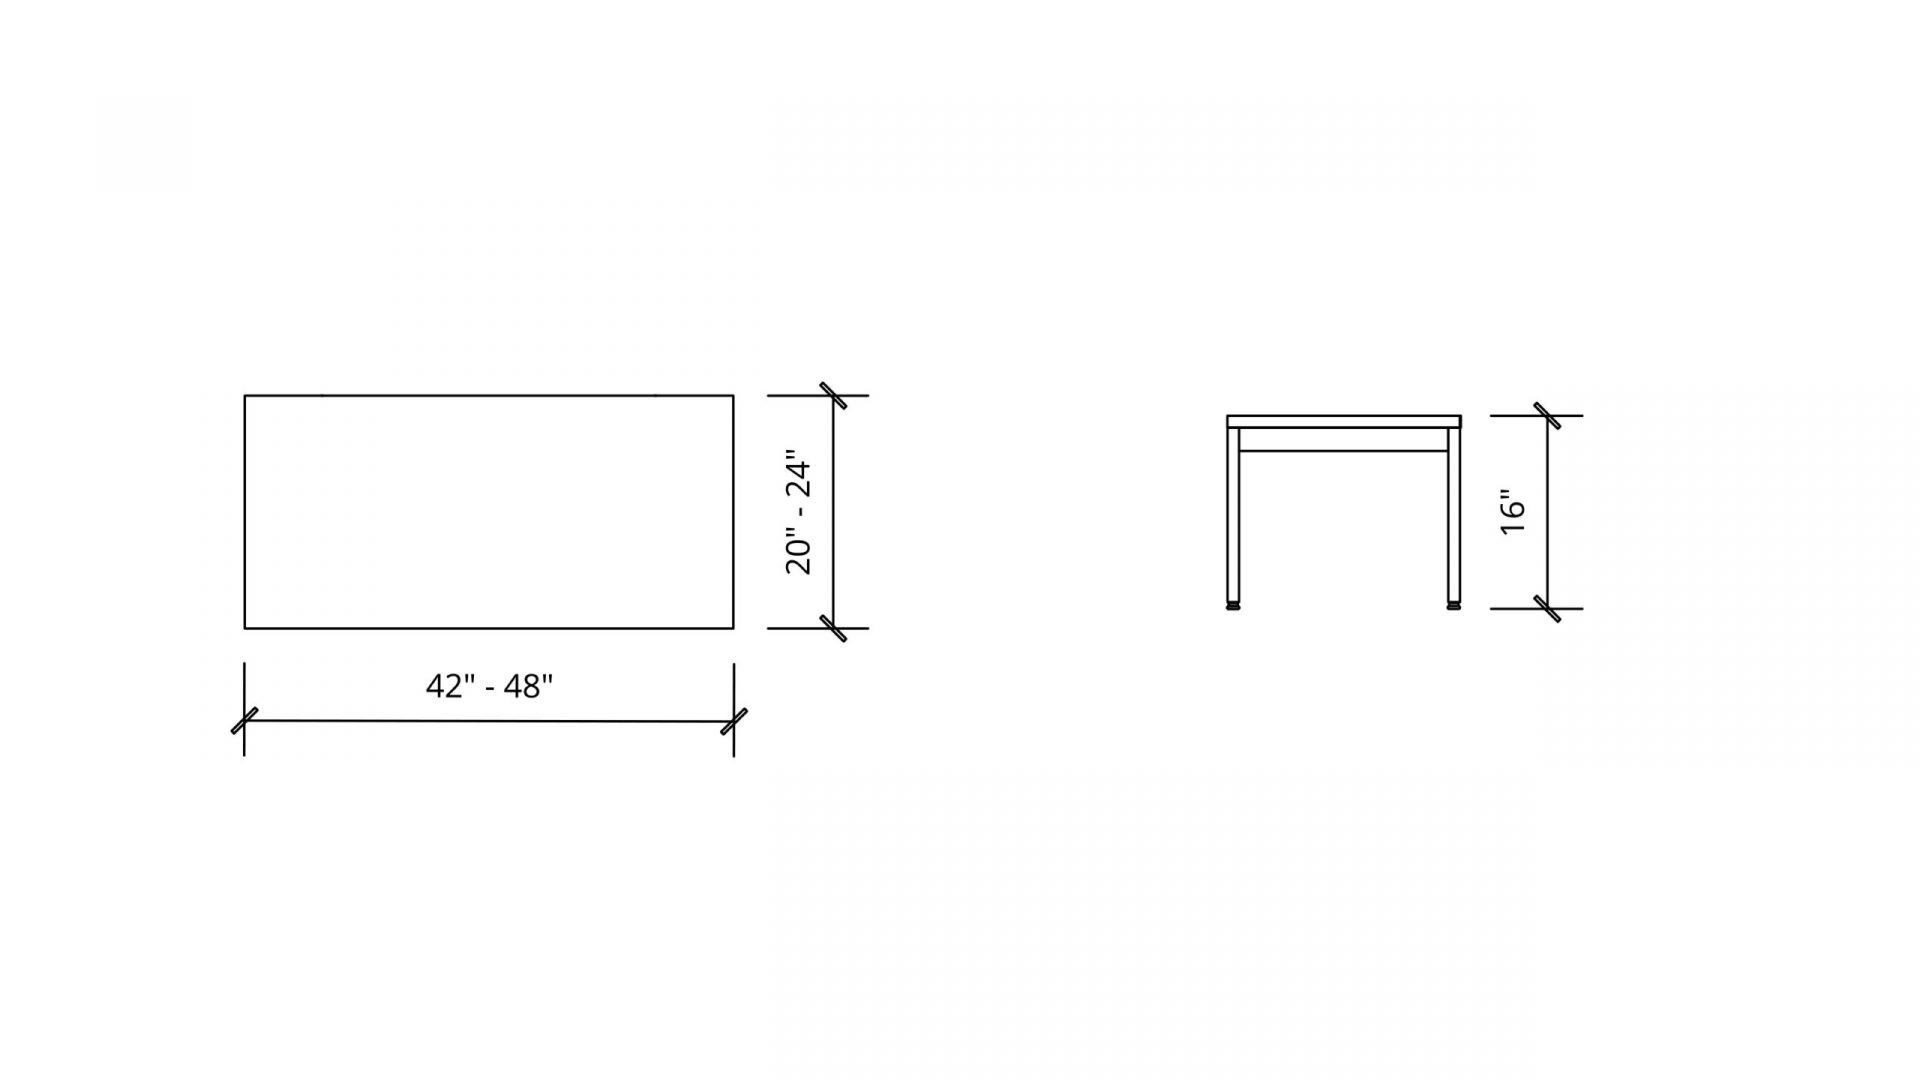 Imperial Dimensions of Rectangular Coffee Table 1659